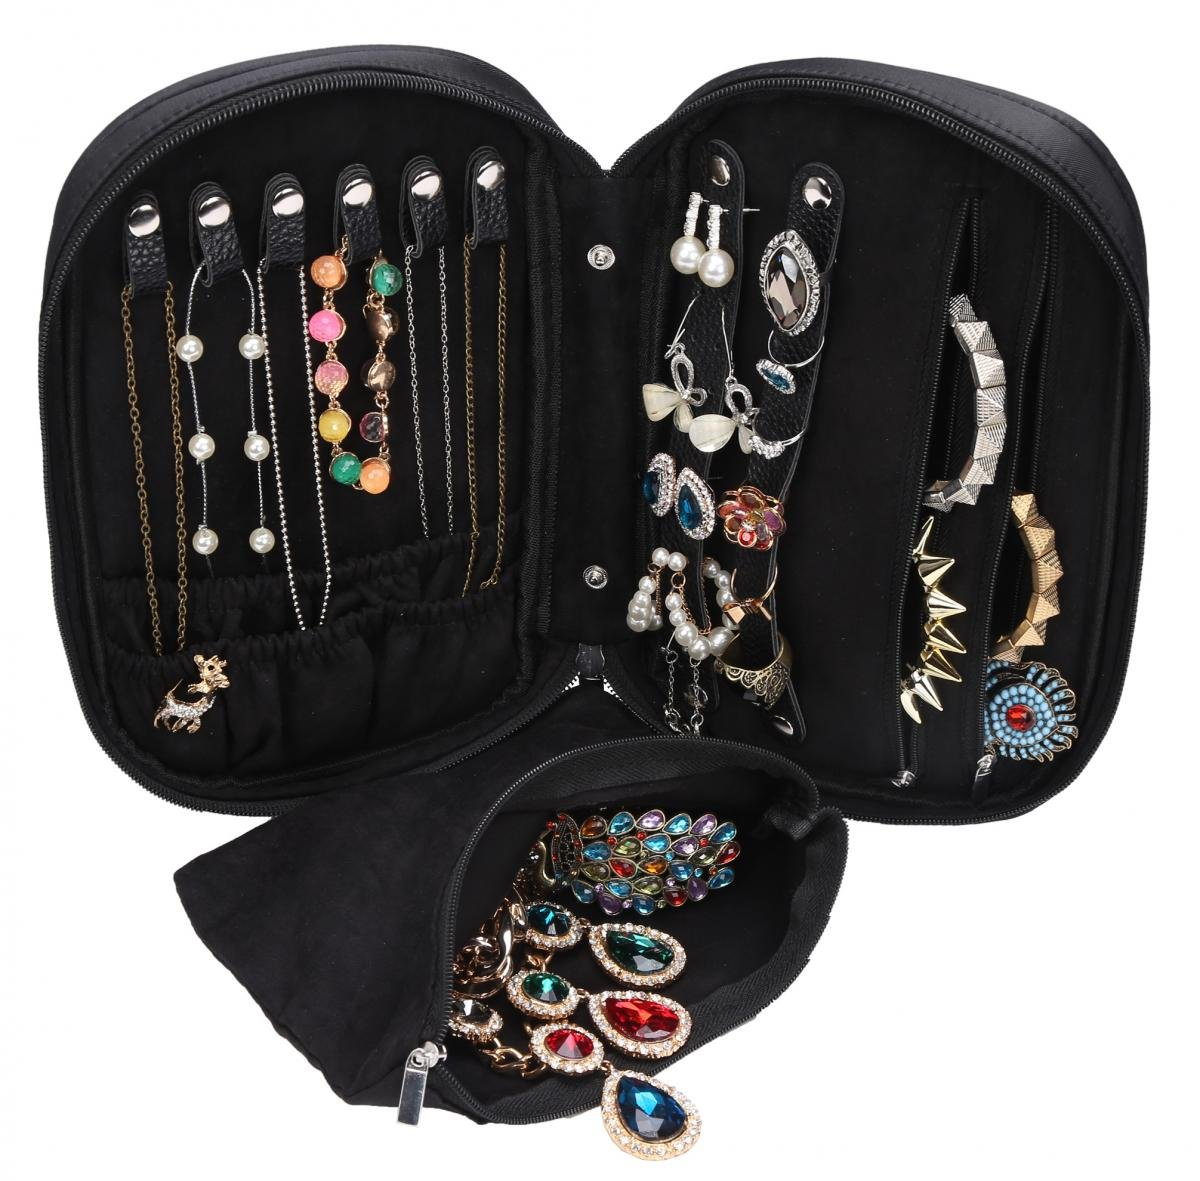 2020 Guide To The Best Travel Jewelry Organizers Chasing The Donkey